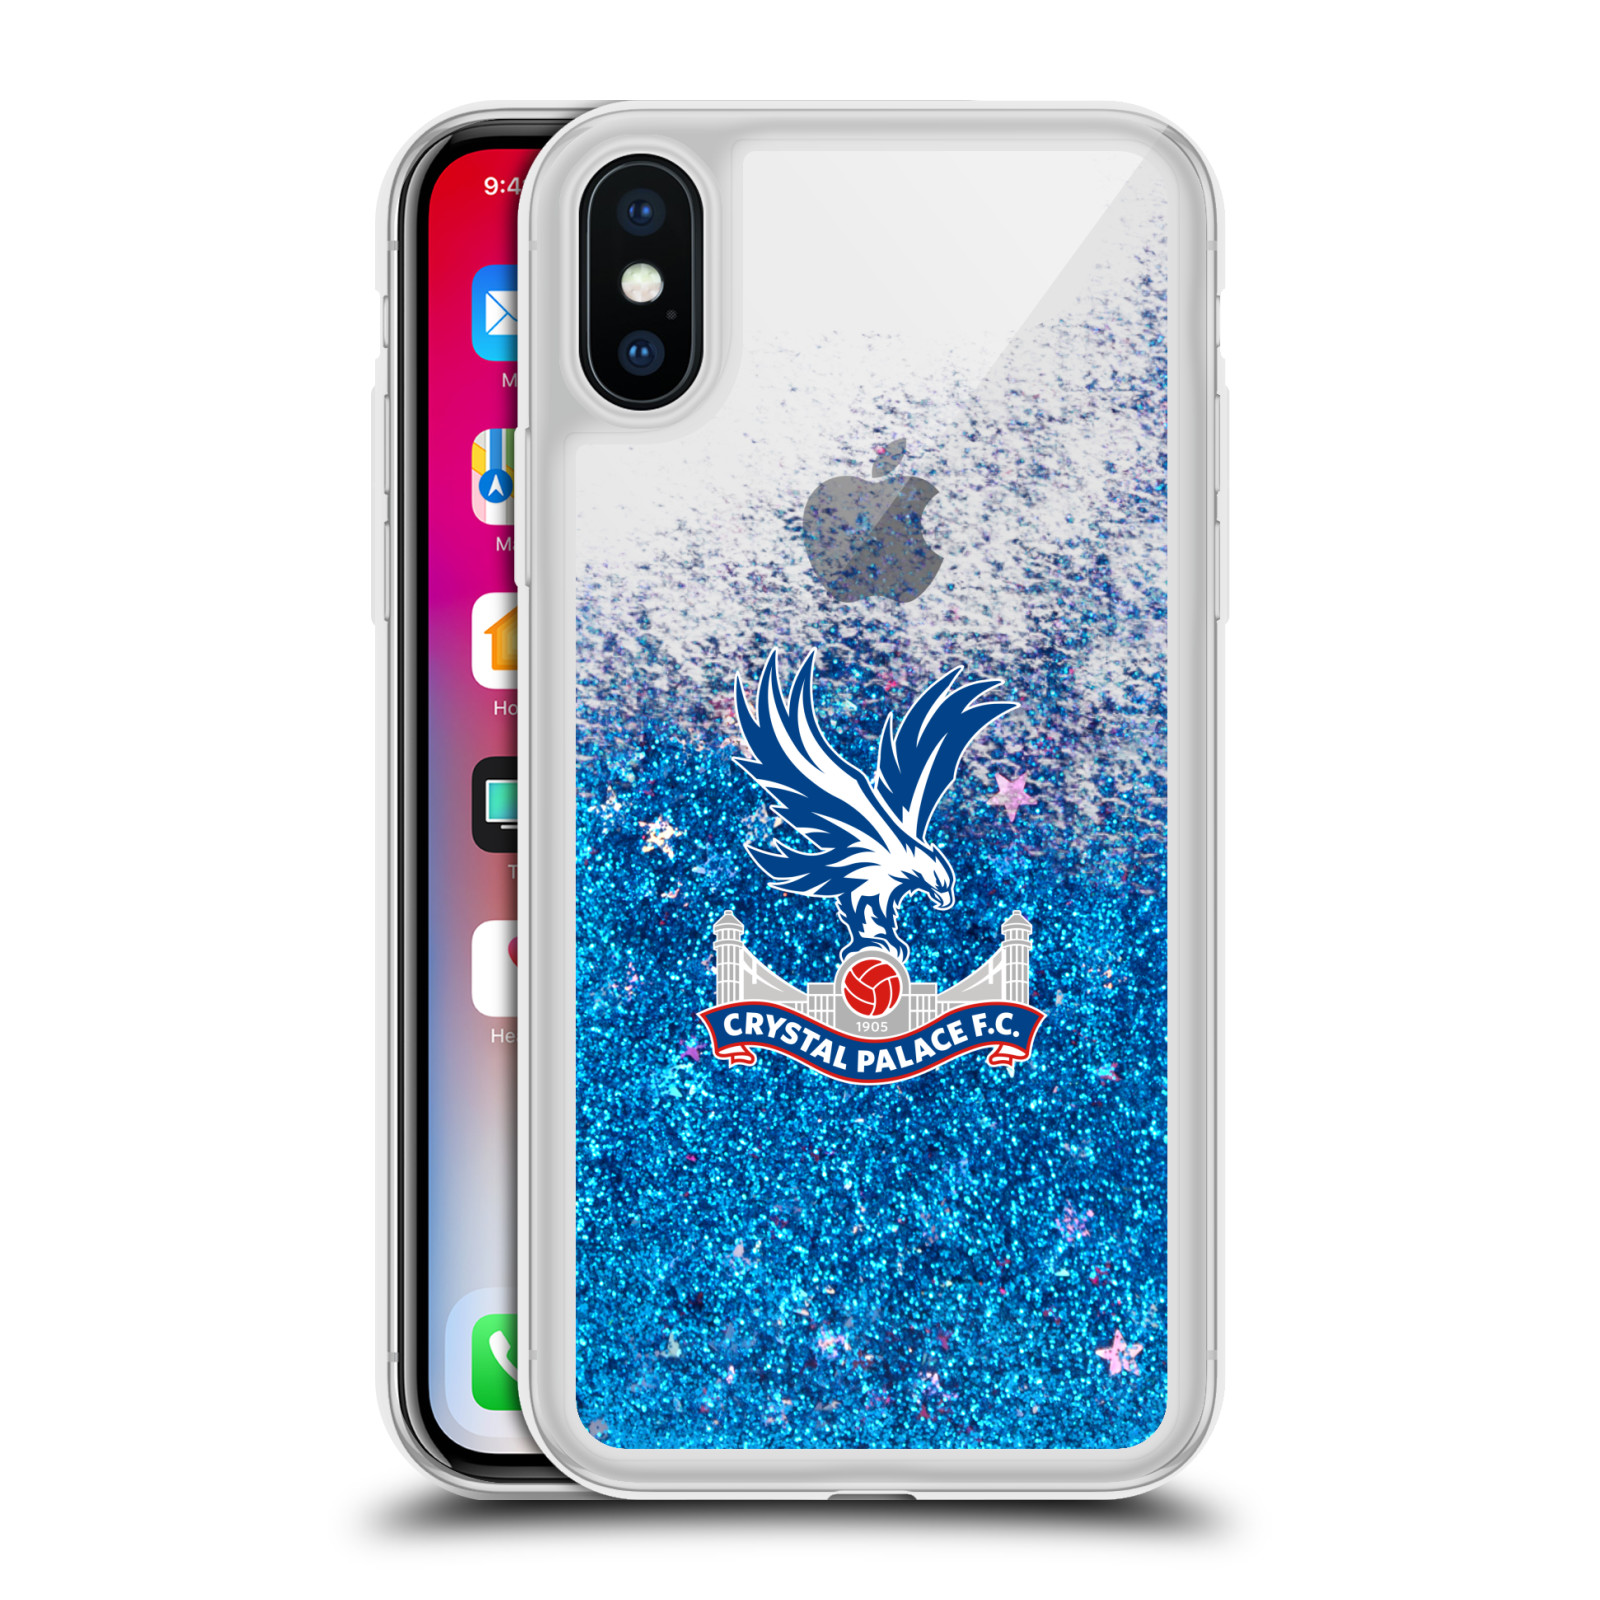 CRYSTAL-PALACE-FC-VARIOUS-DESIGNS-BLUE-HYBRID-LIQUID-GLITTER-FOR-iPHONE-PHONES